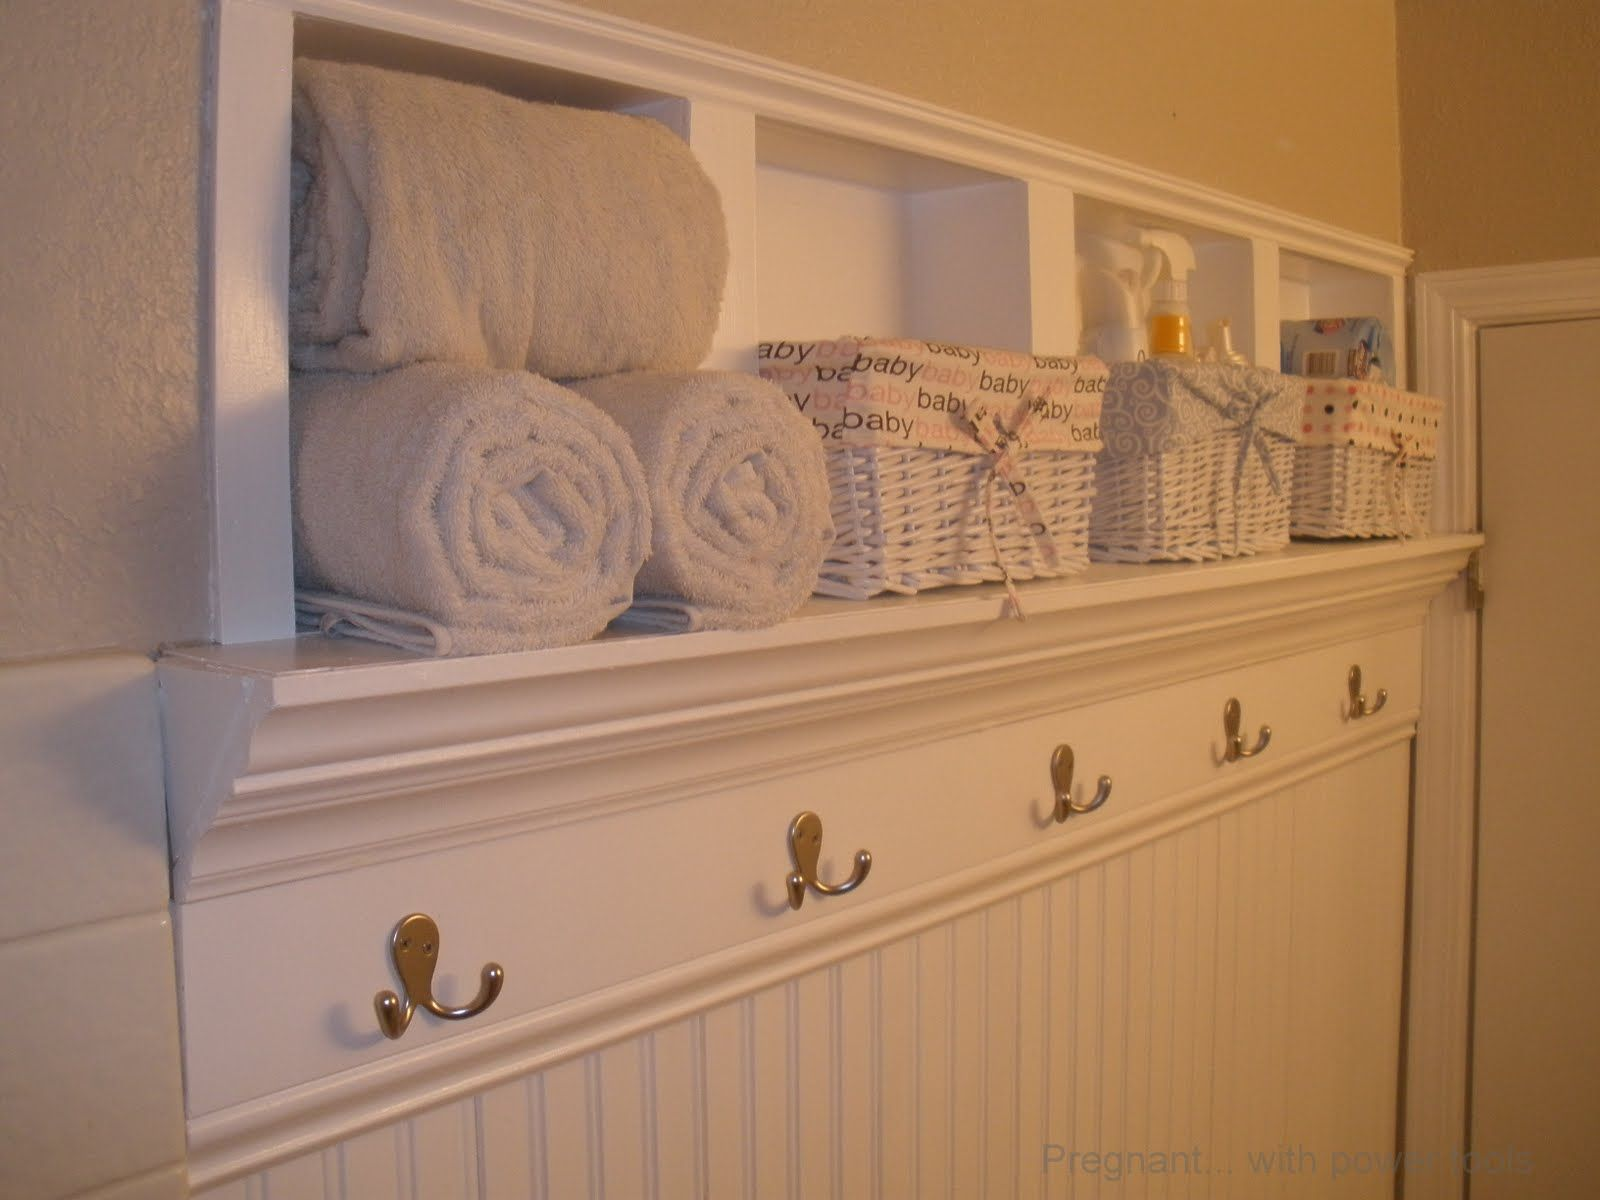 Bathroom Shower Accessories Shelf Built In | Creating Beautiful Storage  Space Within Bathroom Walls